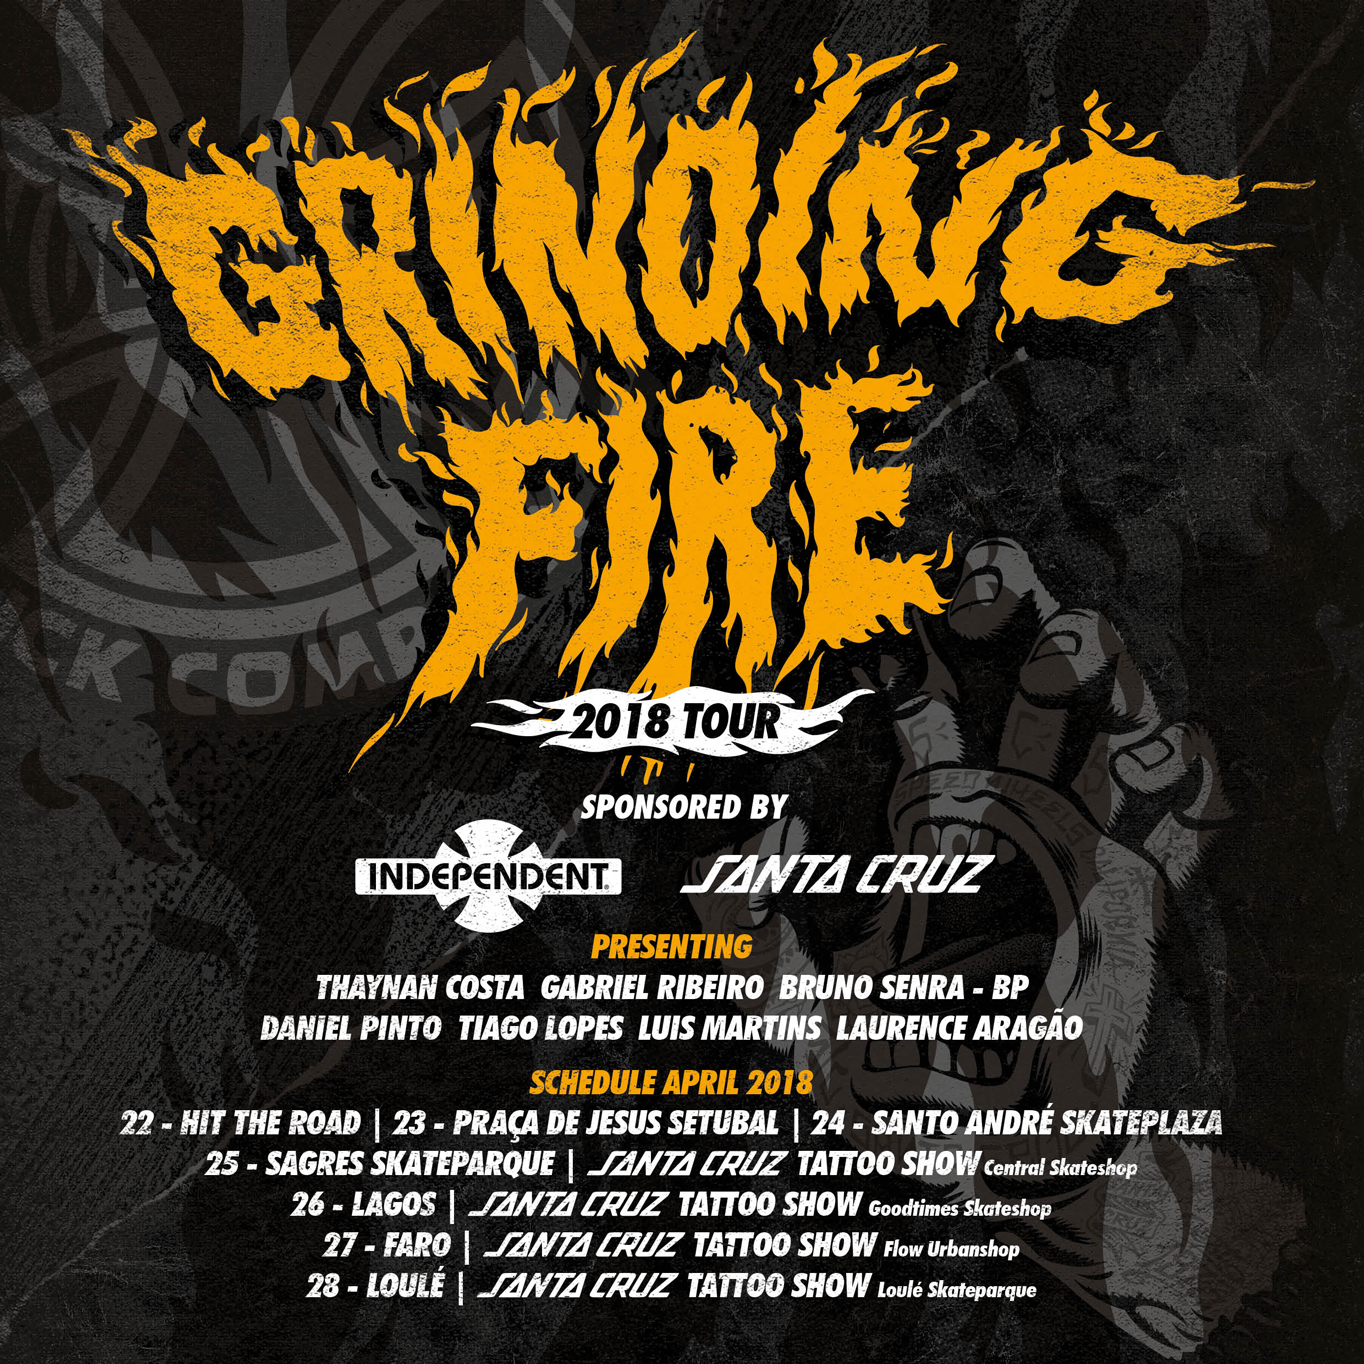 Grinding Fire tour – Independent Trucks / Santa Cruz – 22 a